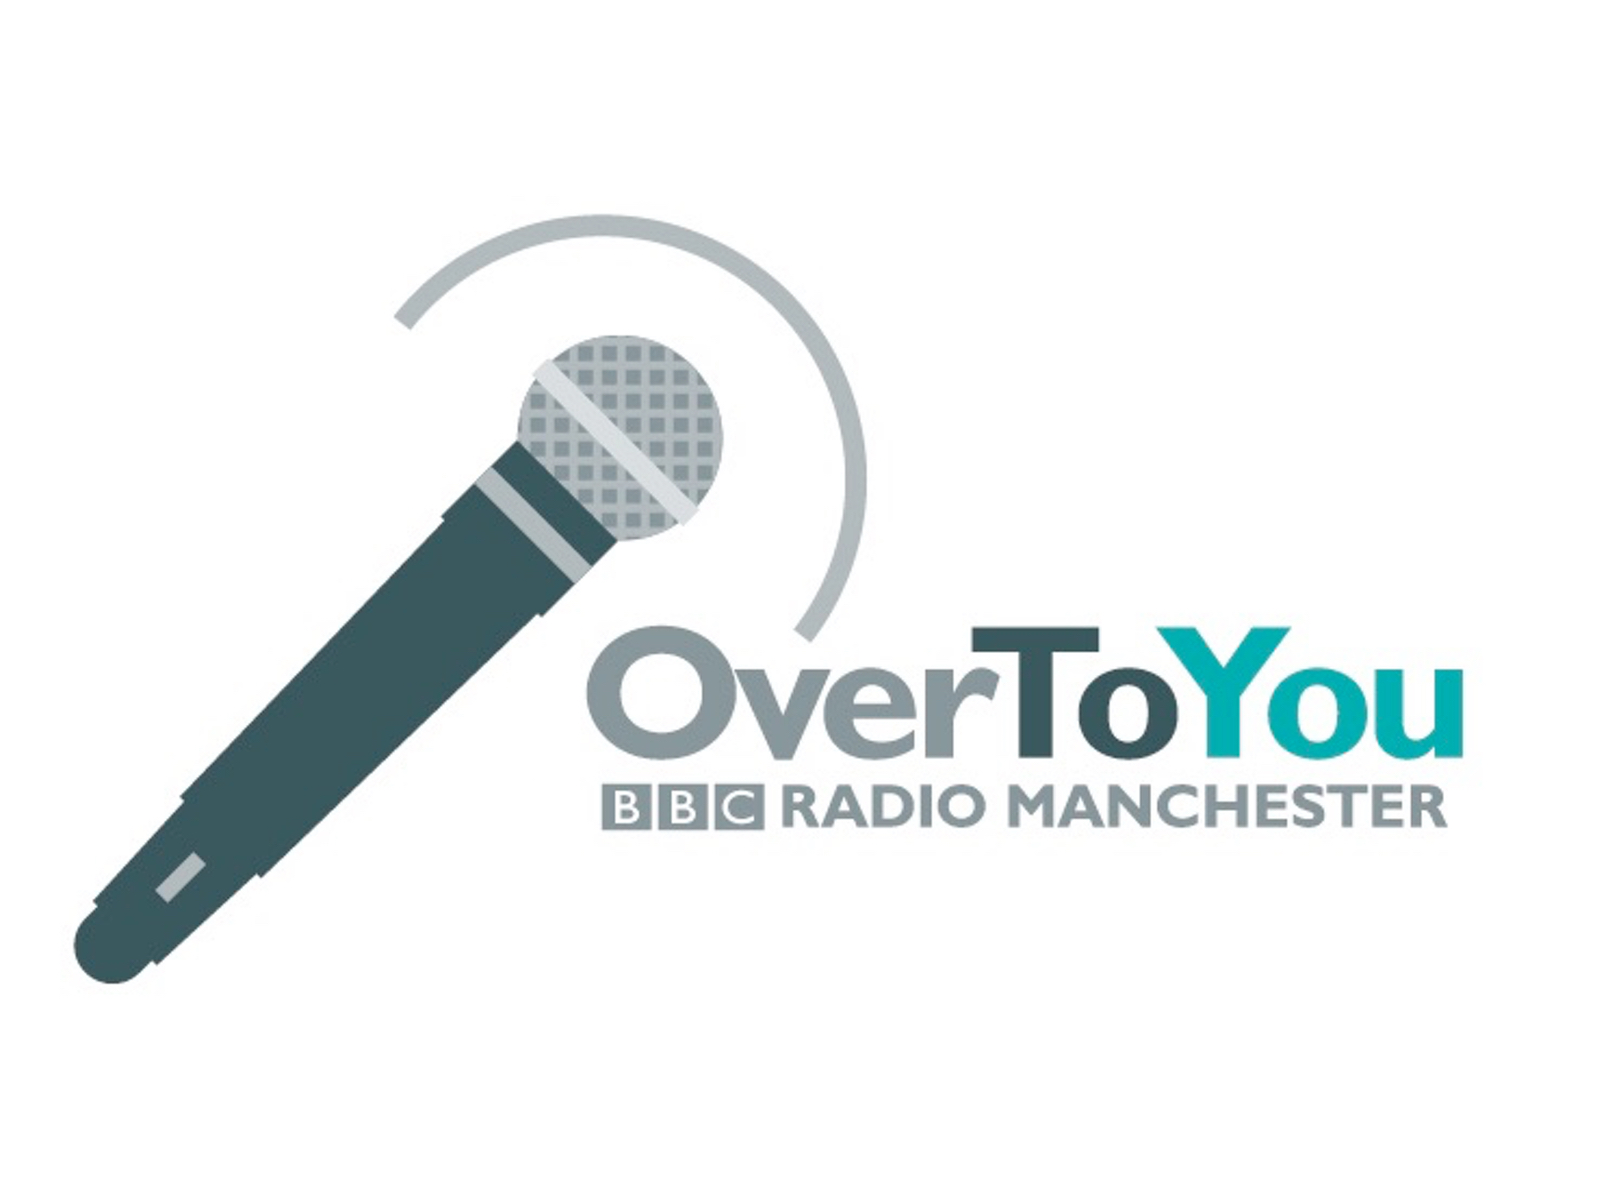 BBC Radio Manchester 'Over to You' project